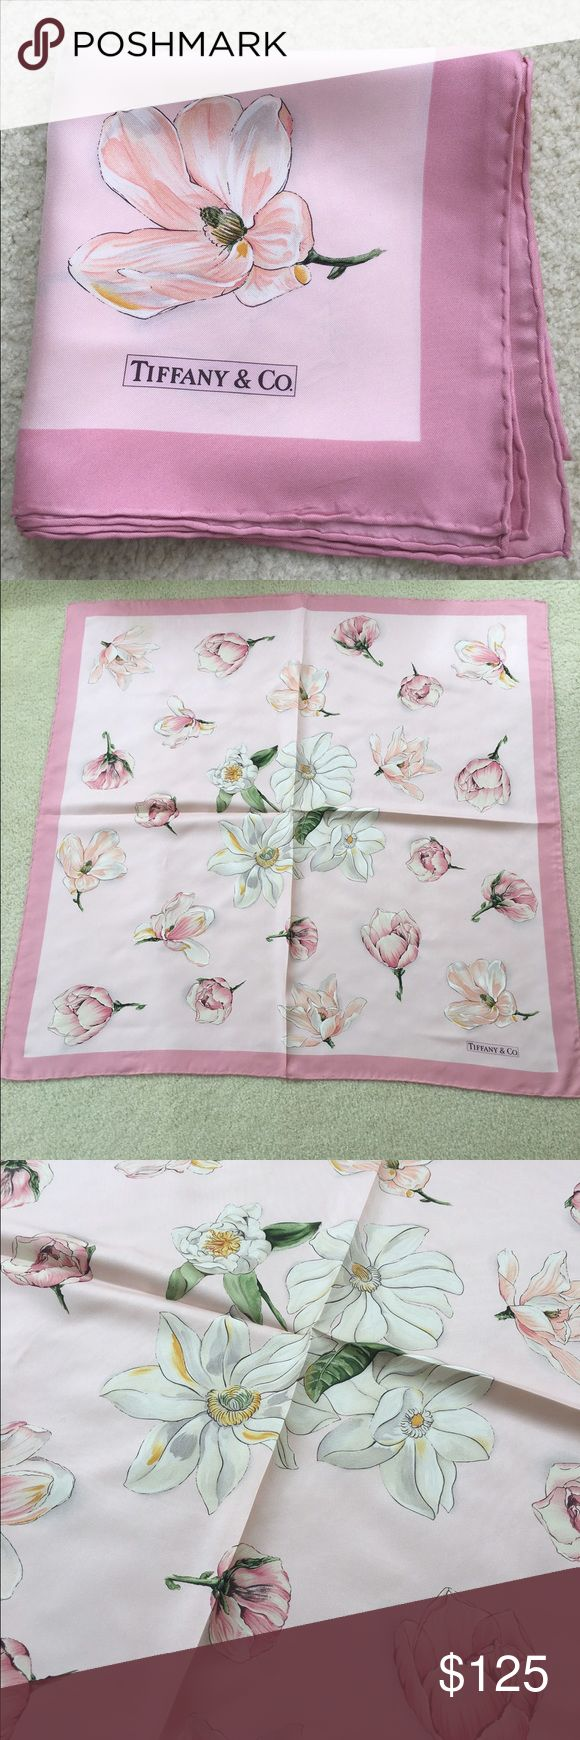 Tiffany & Co. scarf - 100% silk - pink flowers. Authentic Tiffany & Co. 100% Silk scarf, gorgeous!! This has the most feminine design, really beautiful but I rarely wear scarfs anymore. 34 inches square. This could use dry cleaning and is reflected in the price. Please feel free to ask questions. It's really gorgeous and such a waste sitting in my drawer. No trades please. Tiffany & Co. Accessories Scarves & Wraps